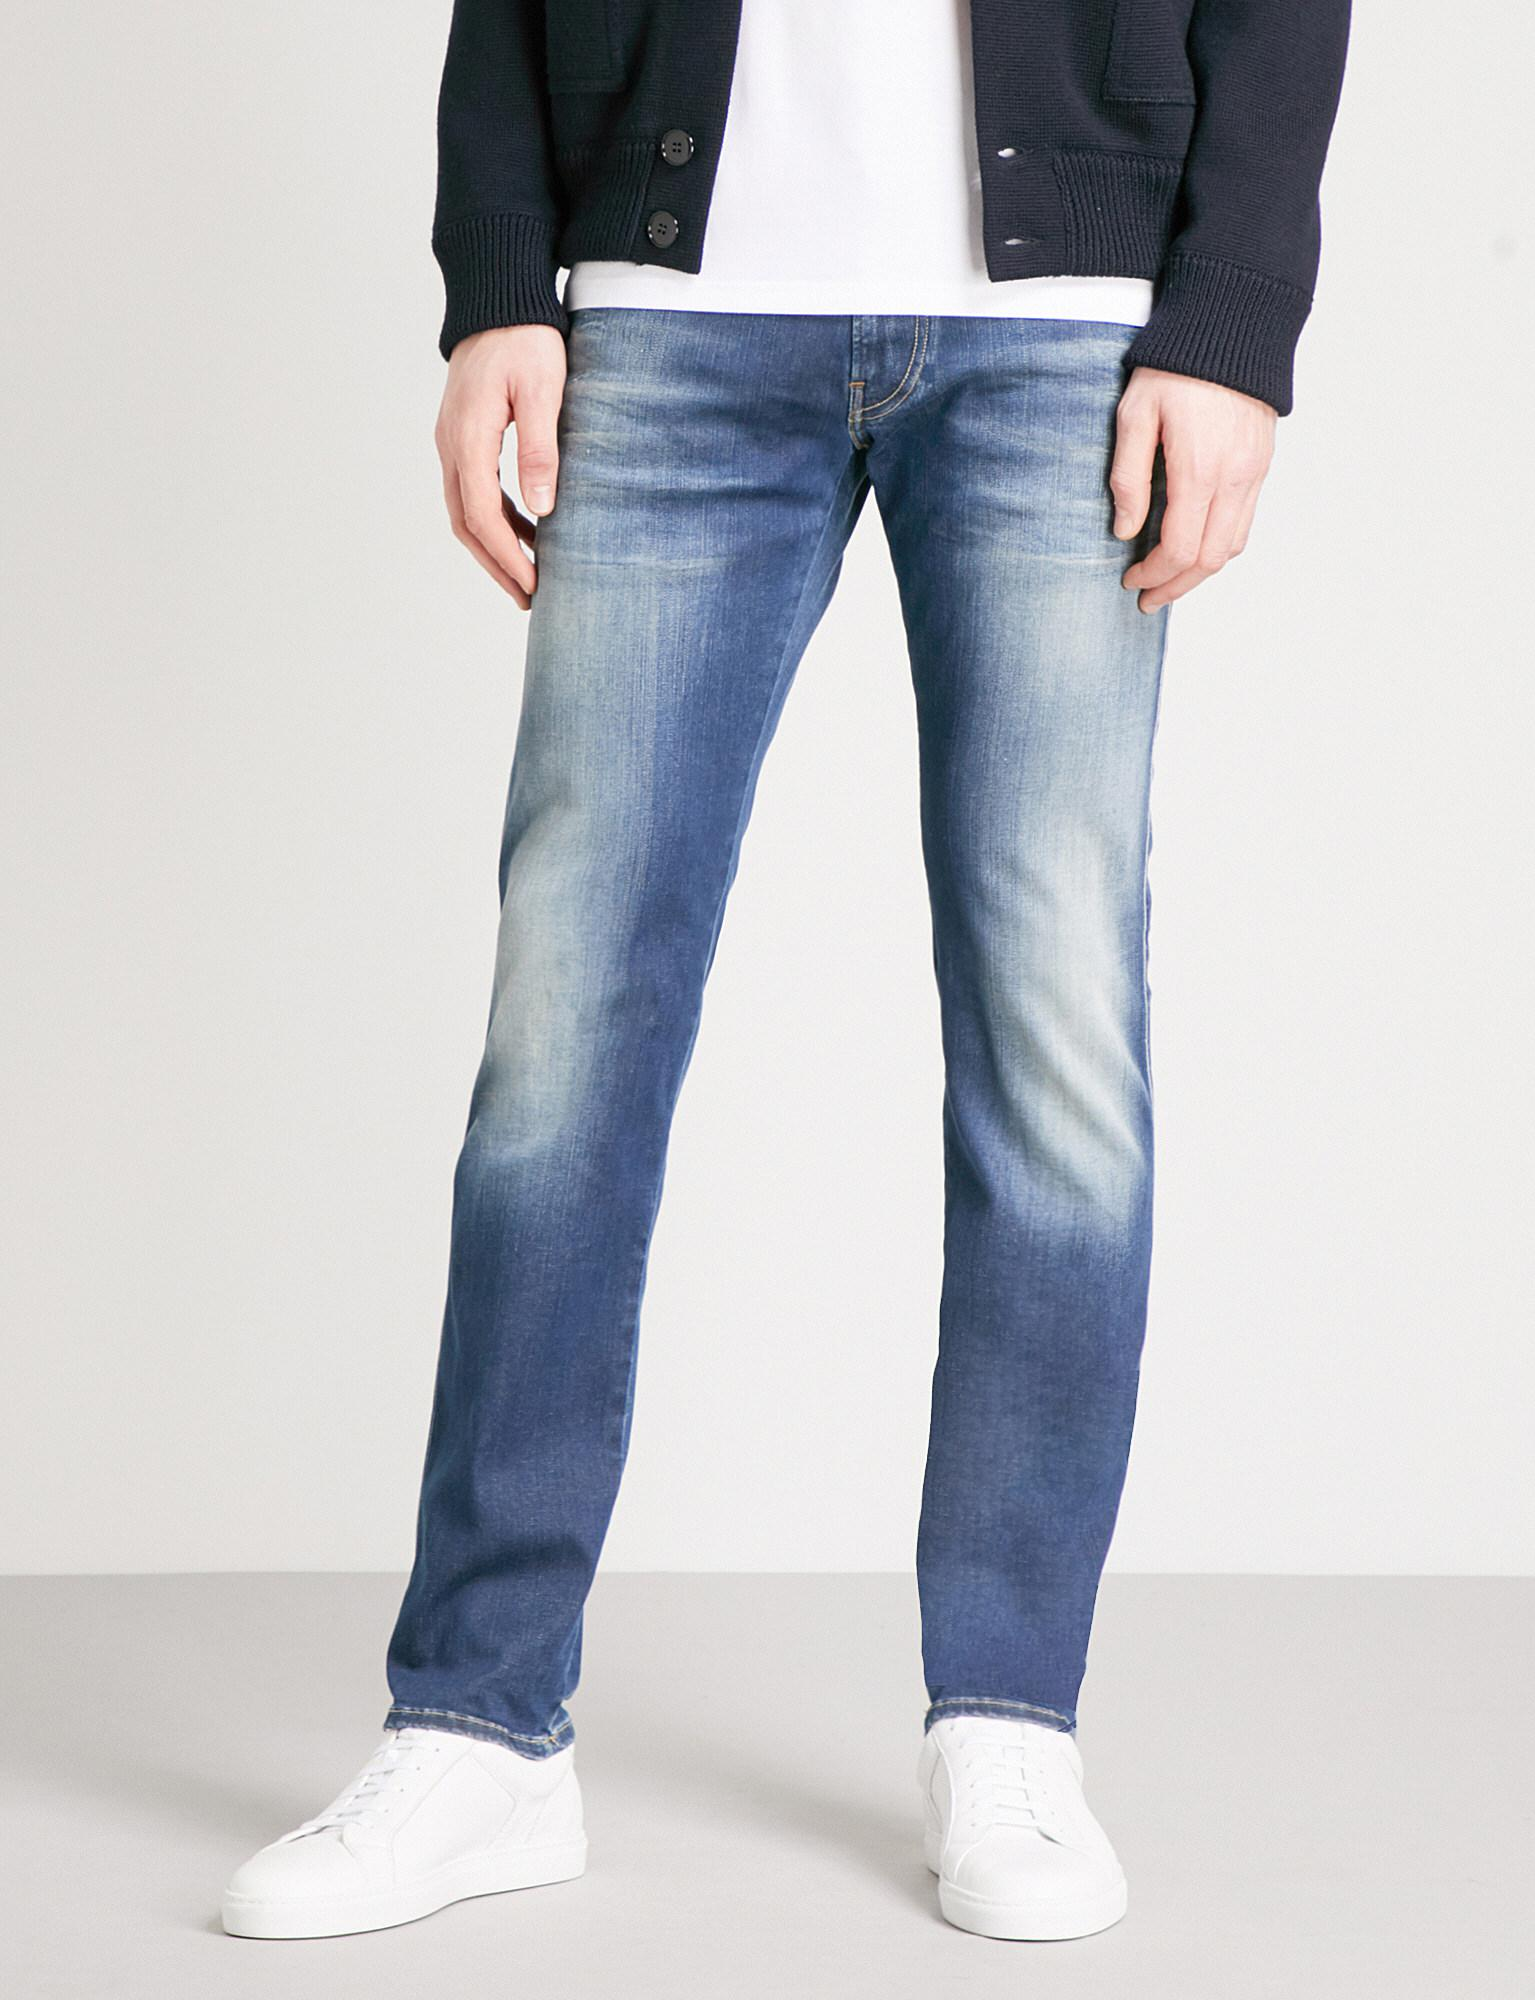 b136646d4f4 Lyst - Replay Anbass Hyperflex Slim-fit Skinny Jeans in Blue for Men